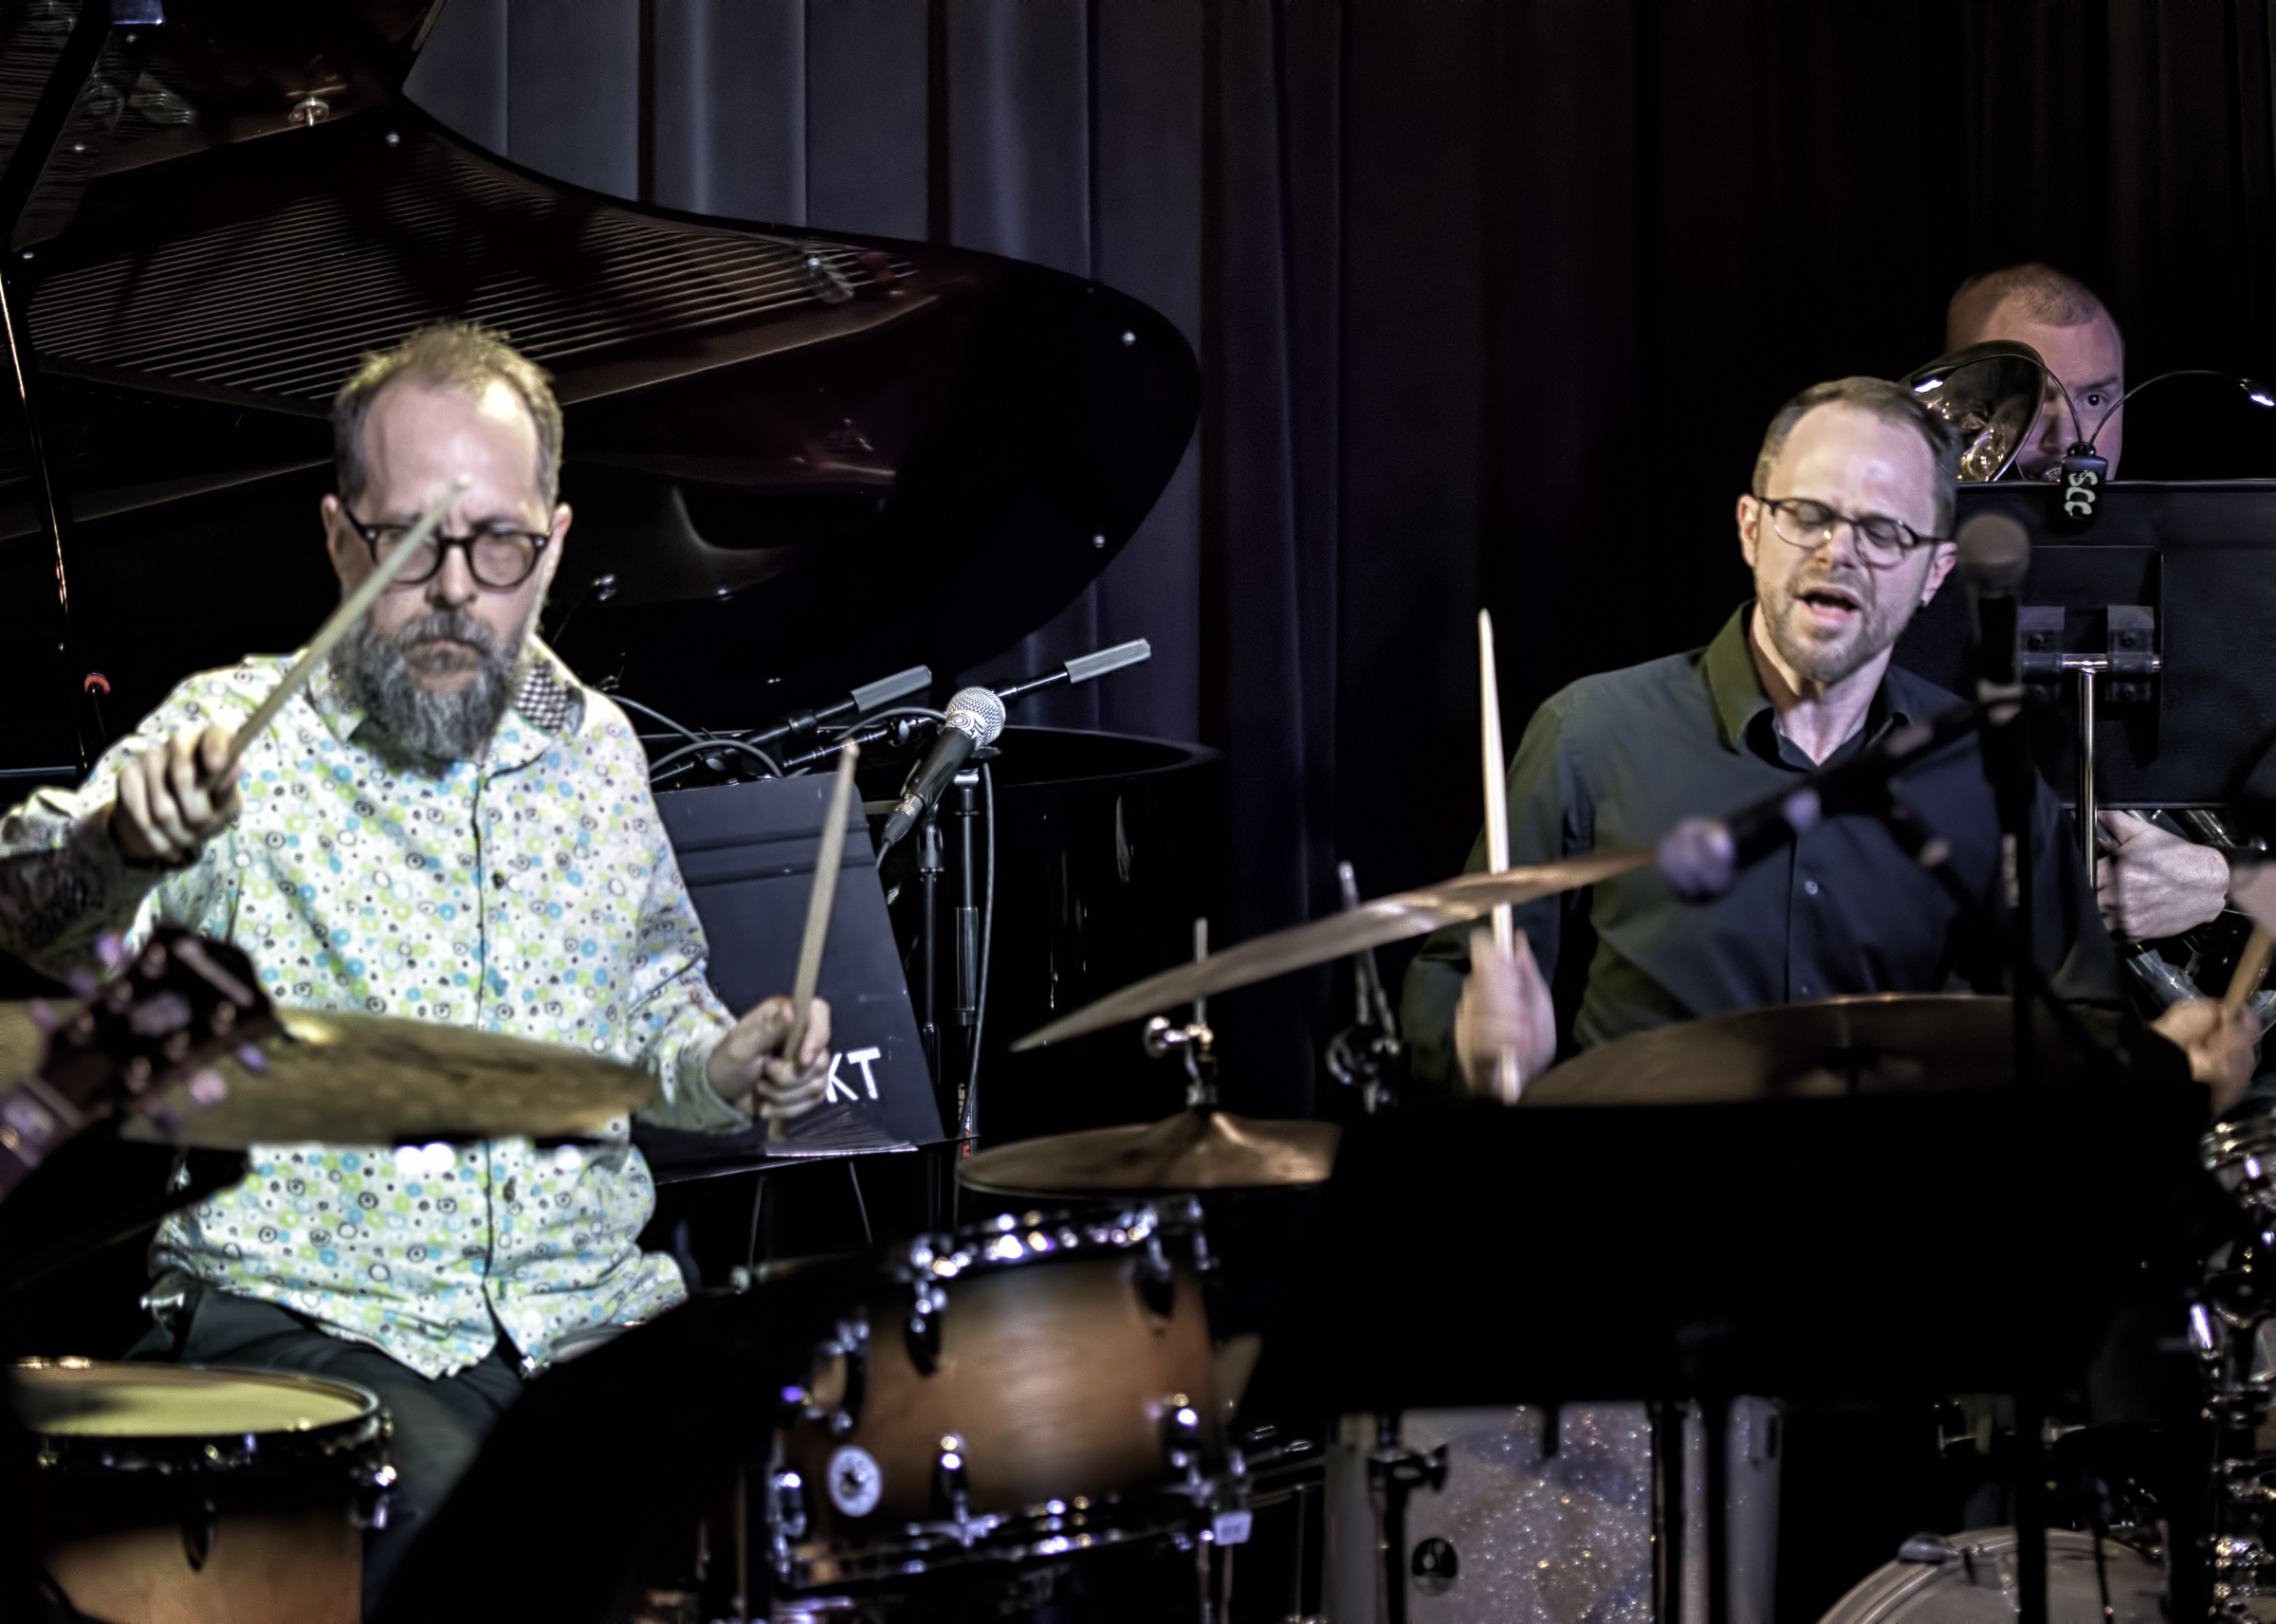 John Hollenbeck And Ryan Anthony With Eric Rasmussen And Scottsdale Community College Jazz Orchestra At The Nash In Phoenix